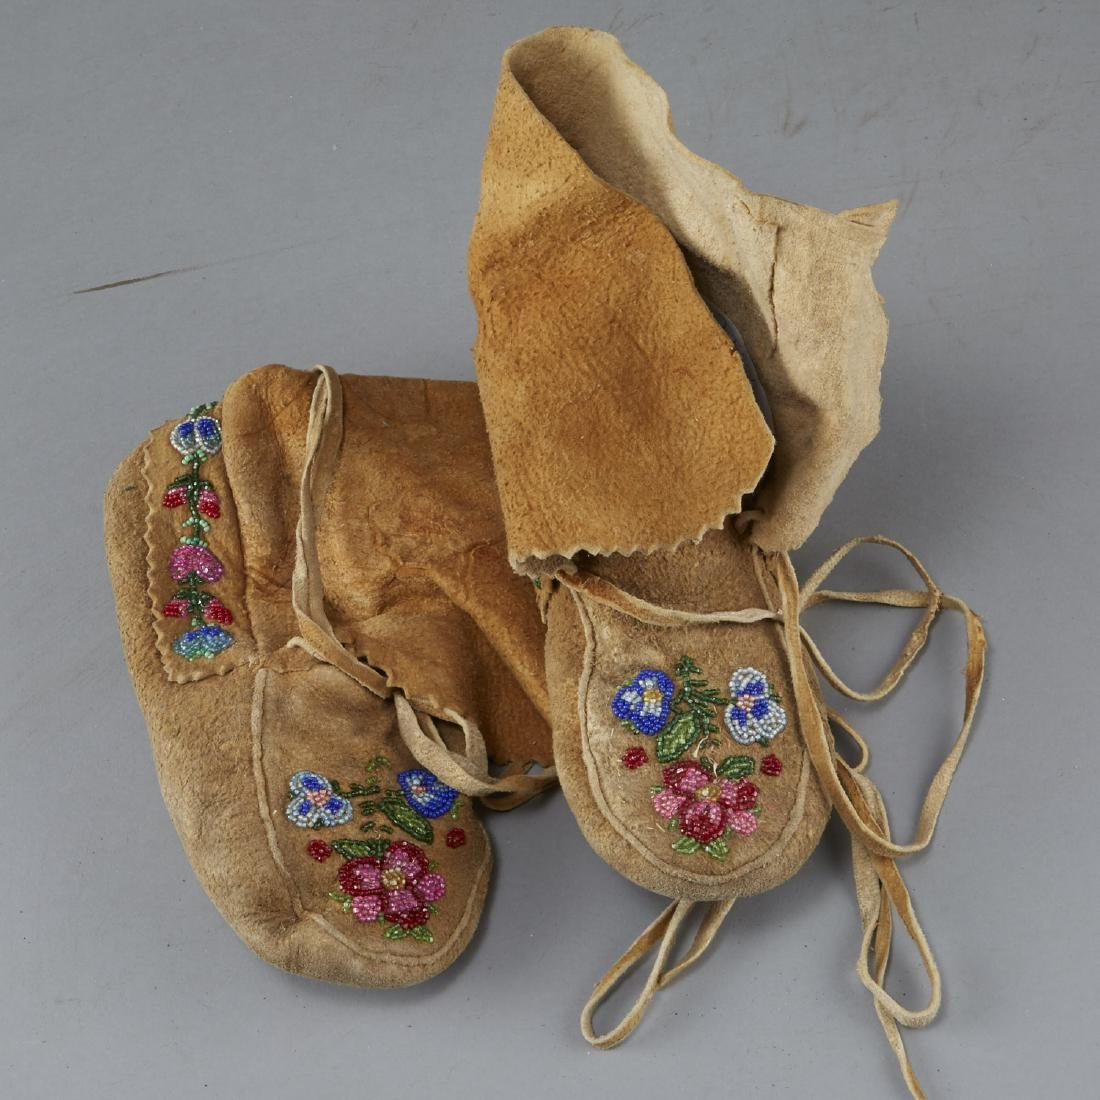 8 Pairs Beaded Moccasin Boots - 4